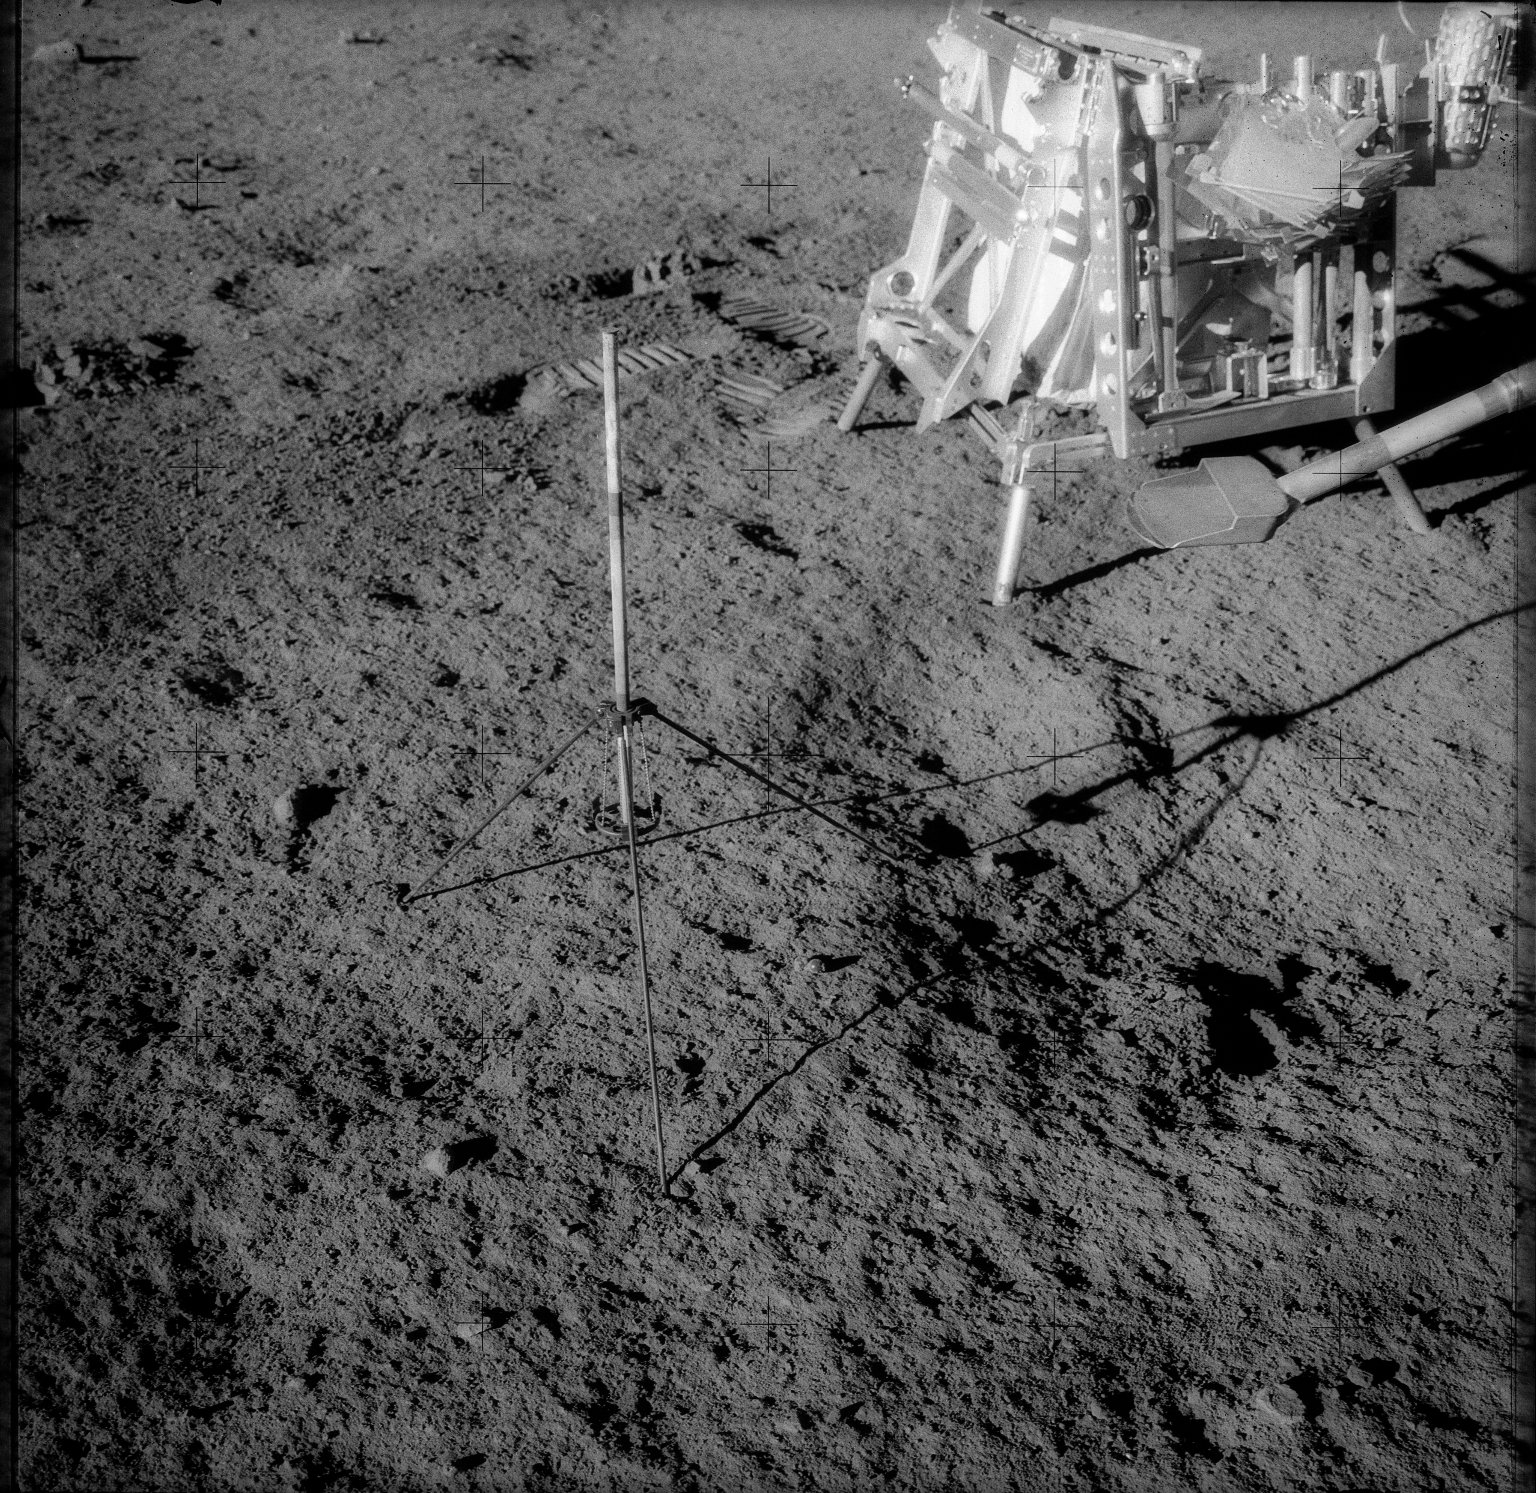 Apollo 12 Mission image - View of a Tri-pod holder for a core tube sampler and hand tool kit